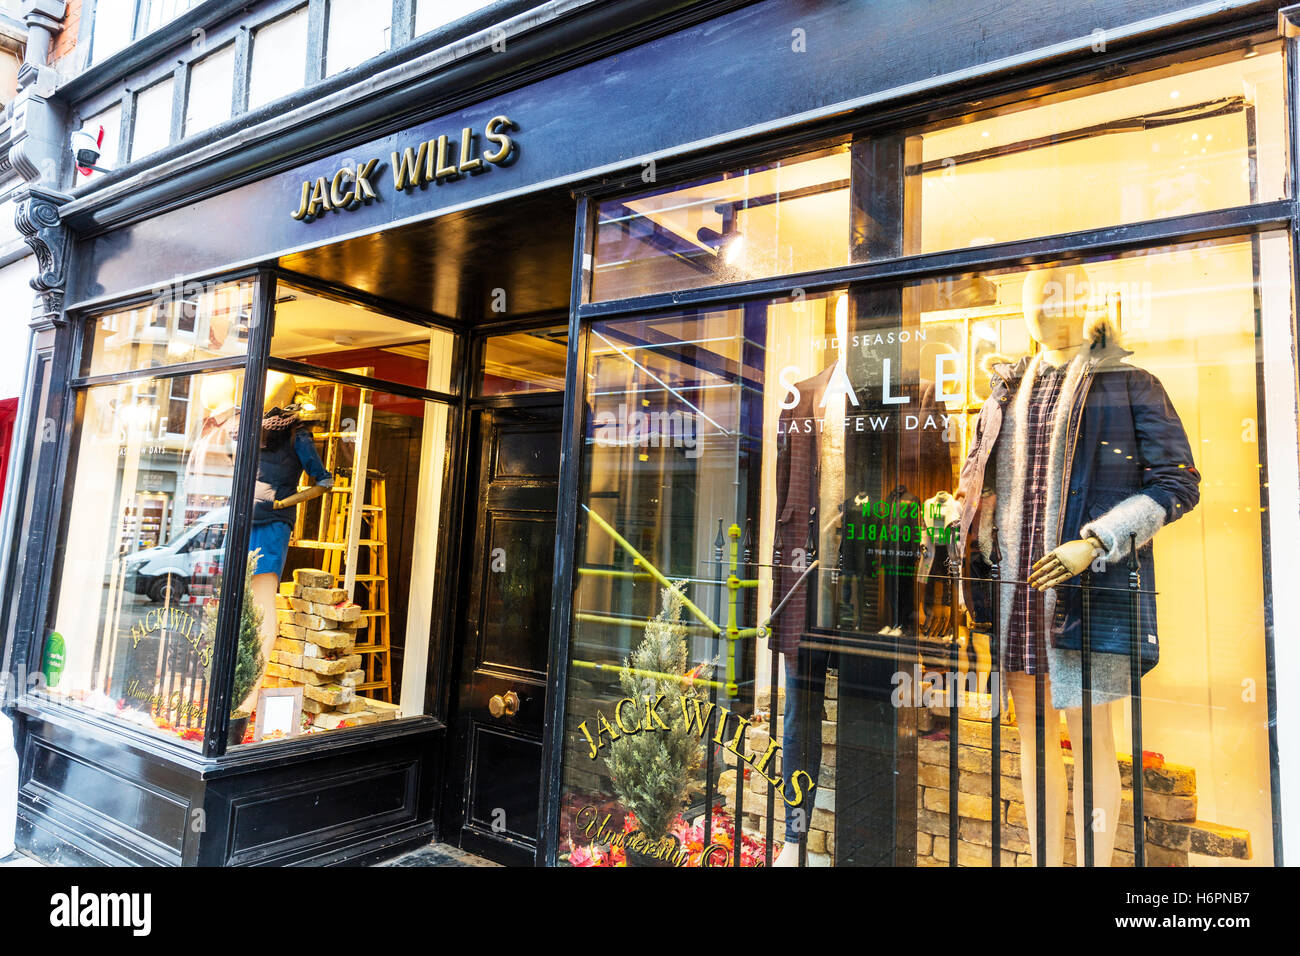 Jack Wills Clothes Shop Clothing Store High Street Shops Nottingham Stock Photo Royalty Free ...